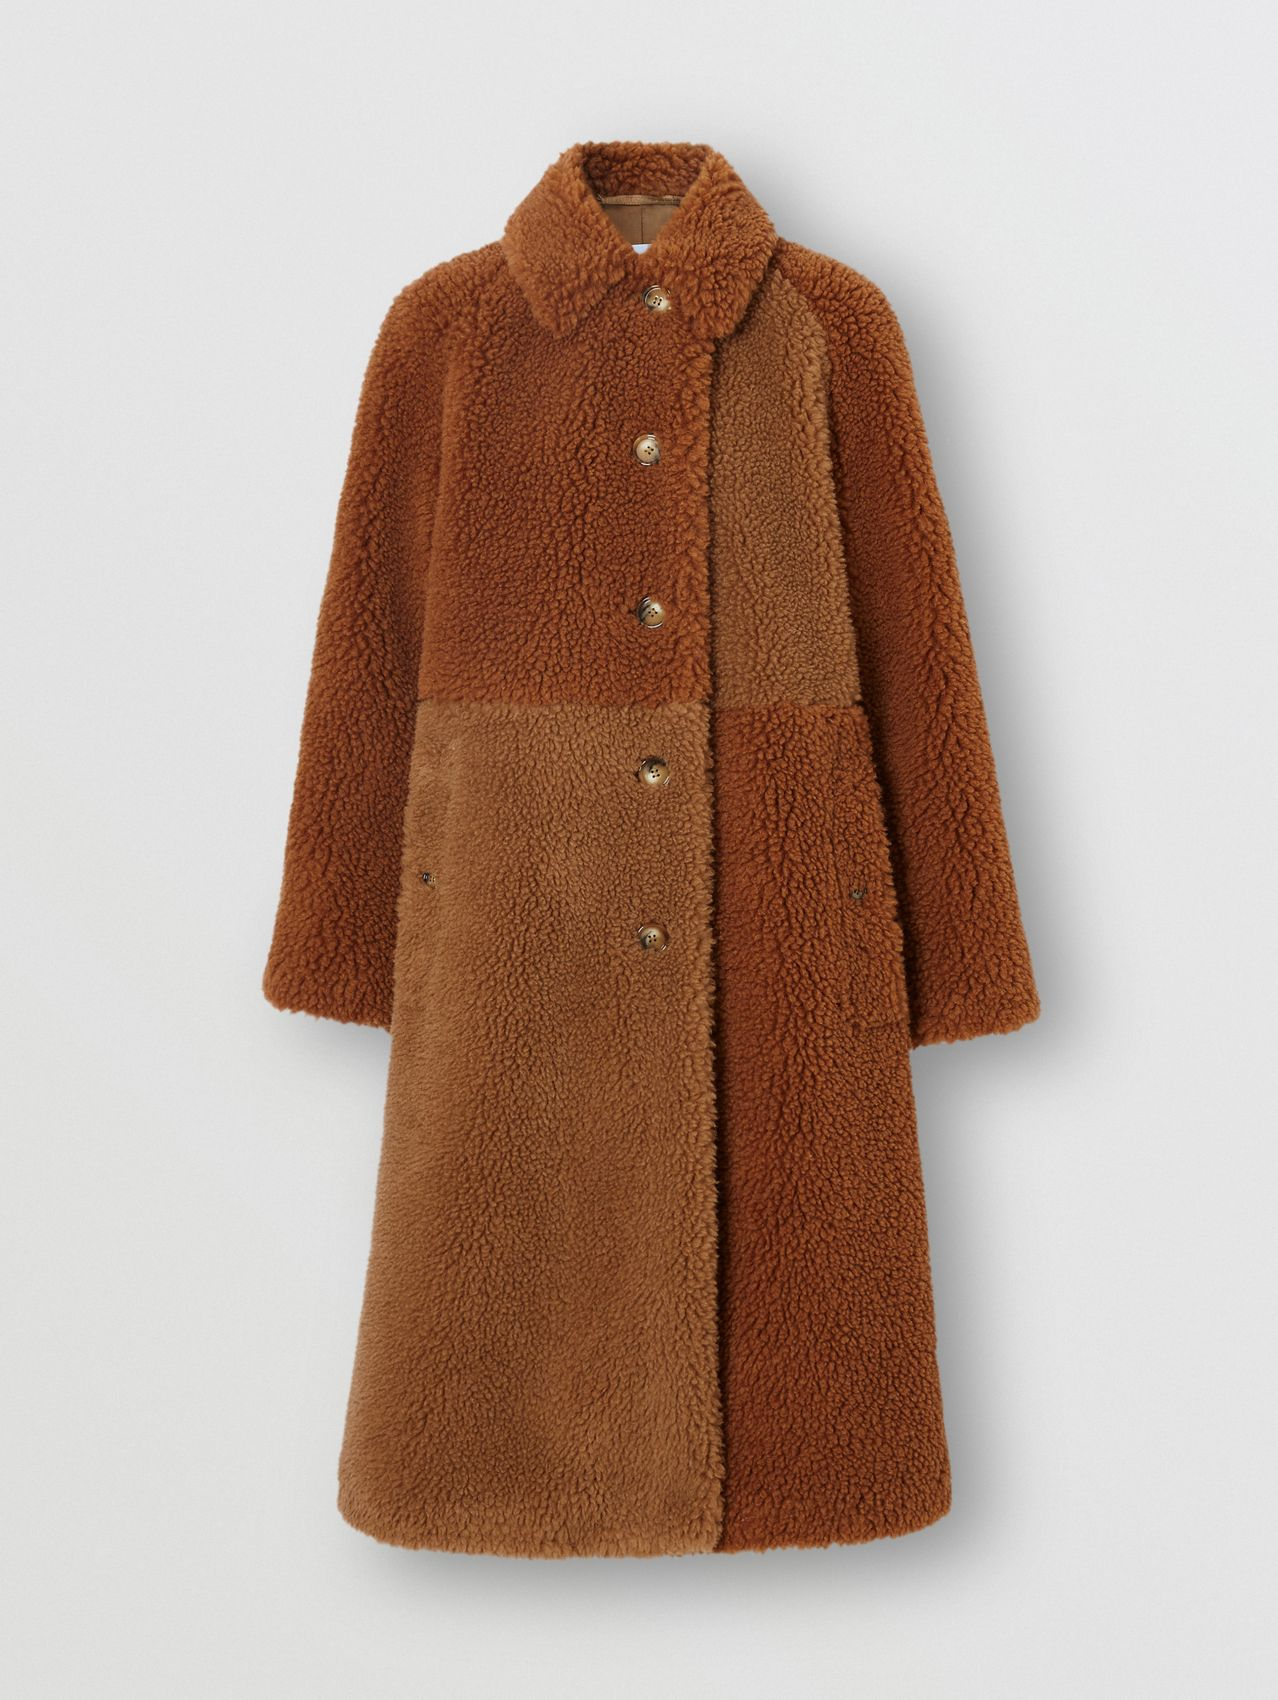 Faux Shearling and Camel Hair Blend Coat (Brown)